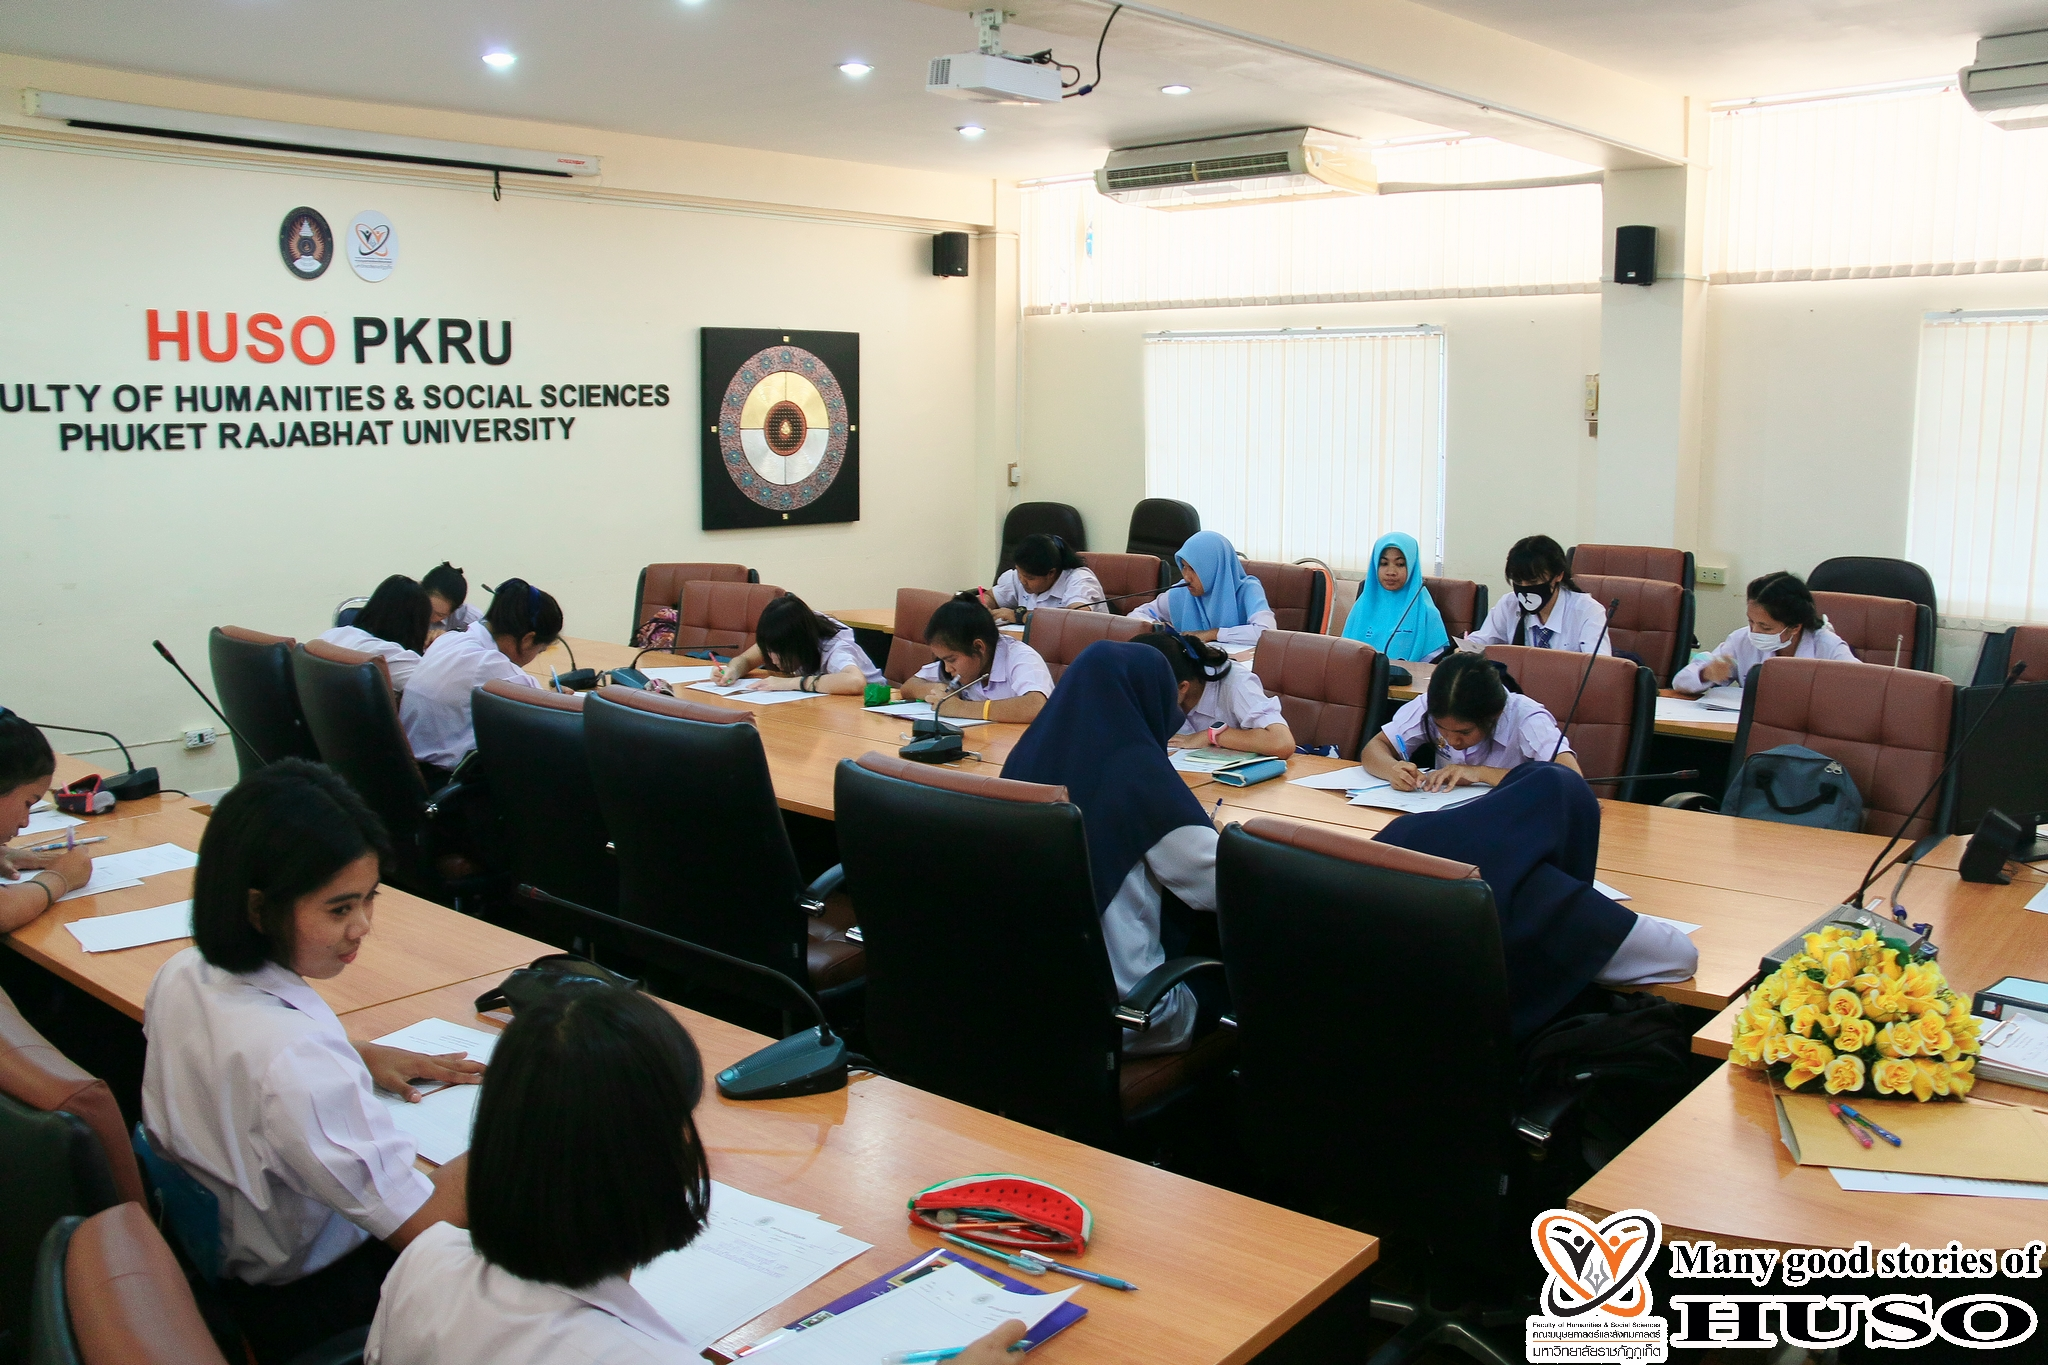 HUSO PKRU Thai Program Academic Skills Competition Thai Handwriting 15 February 2018 2